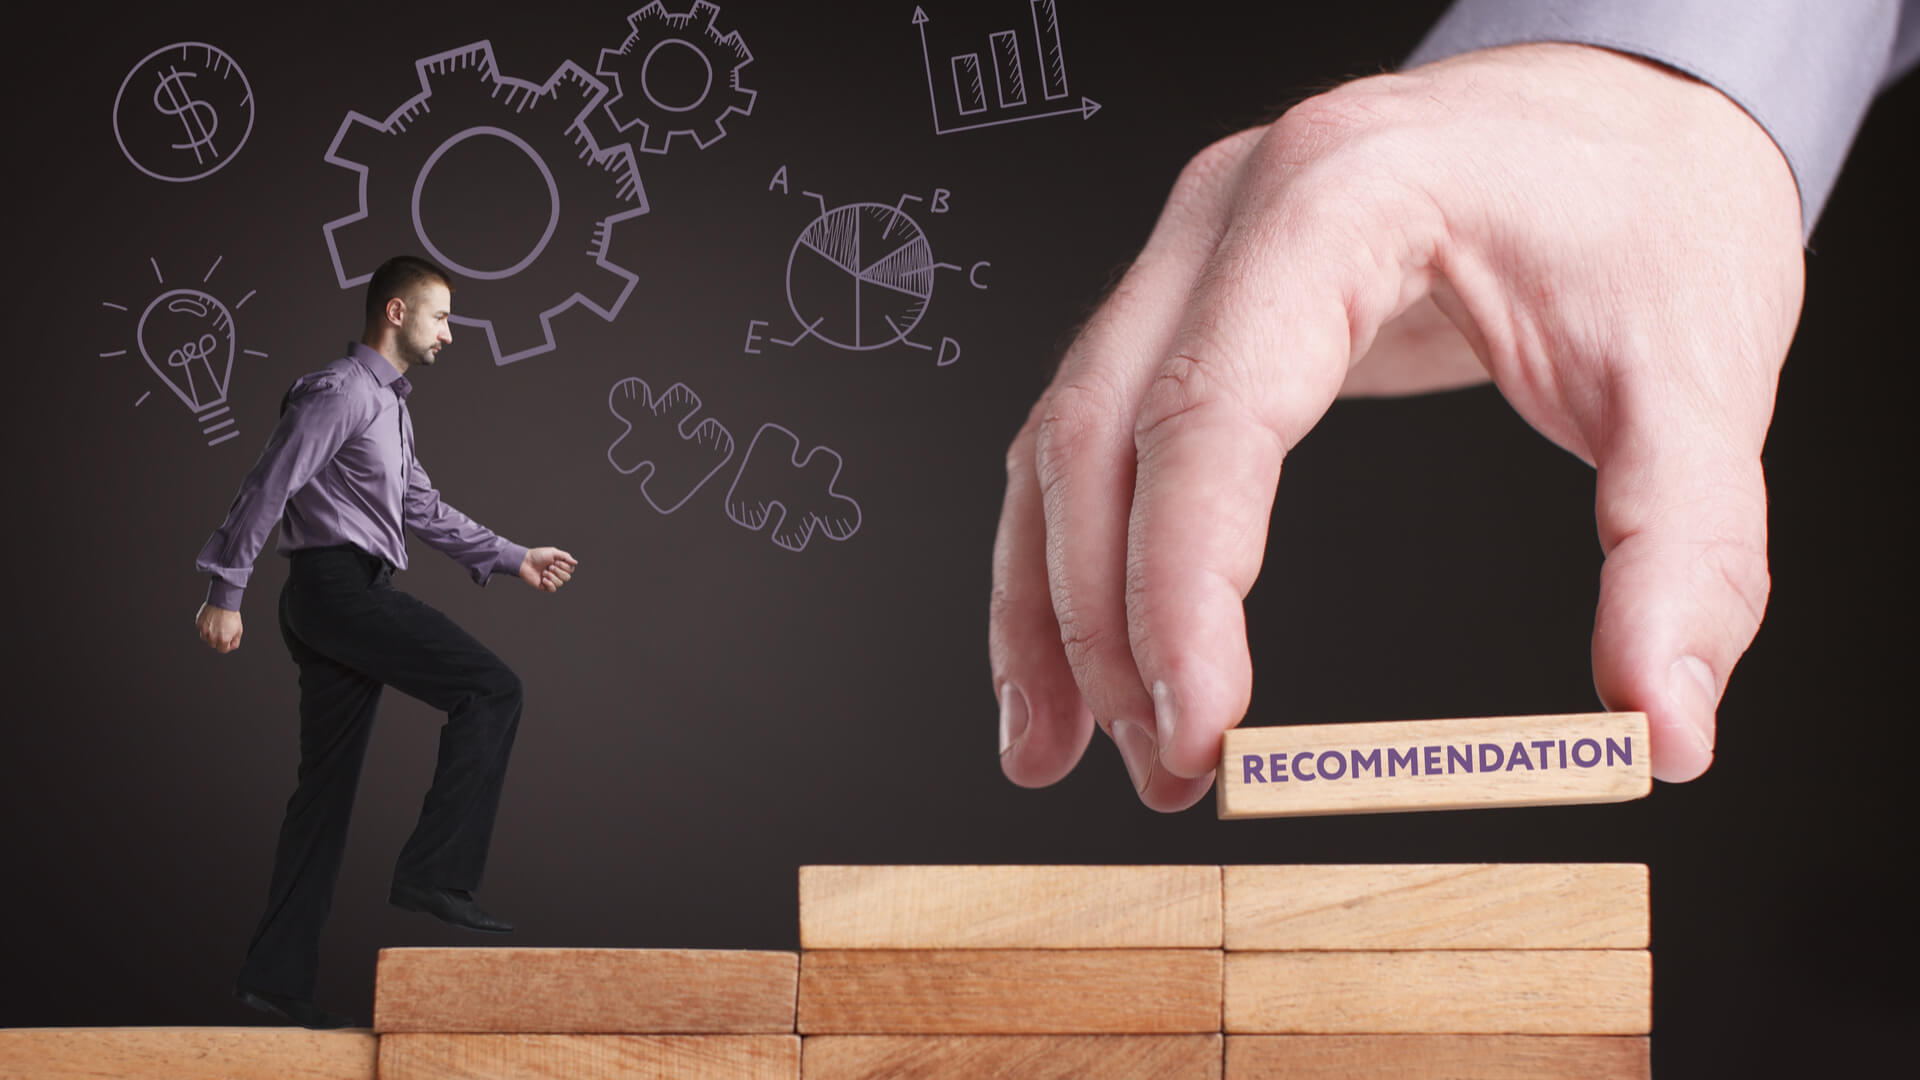 the roi of recommendation engines for marketing